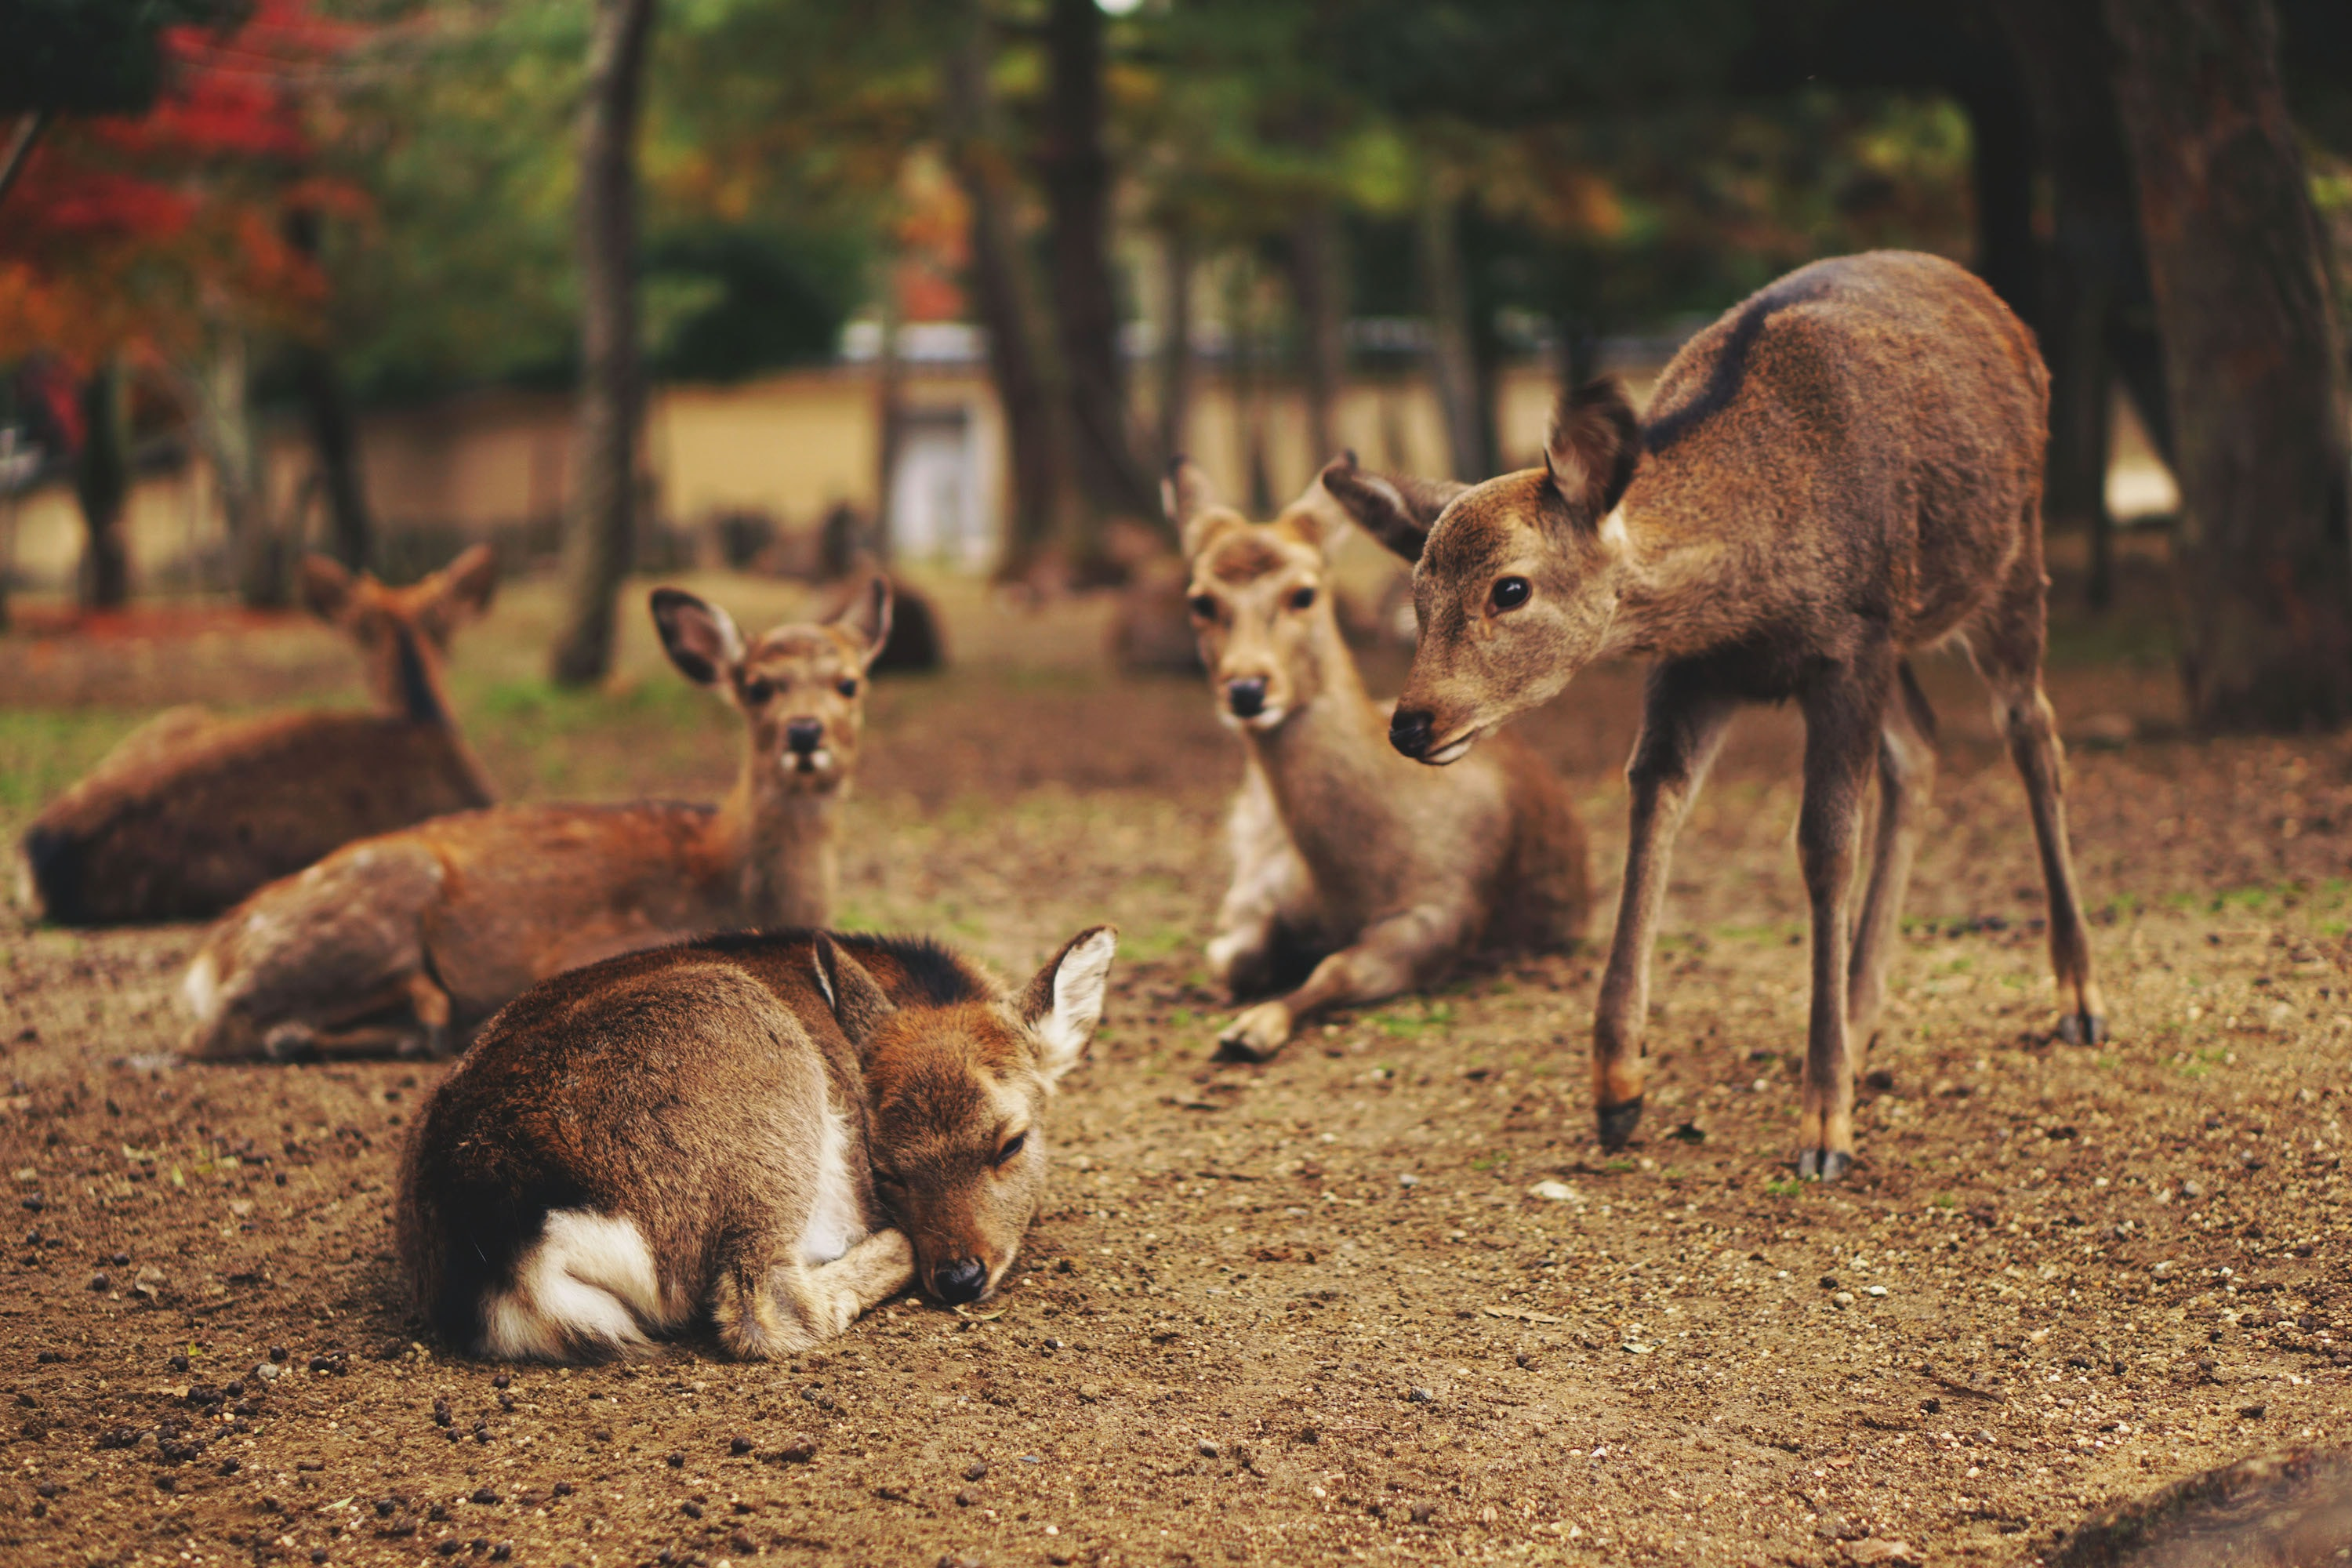 A group of deer in Japan's famous Nara Park